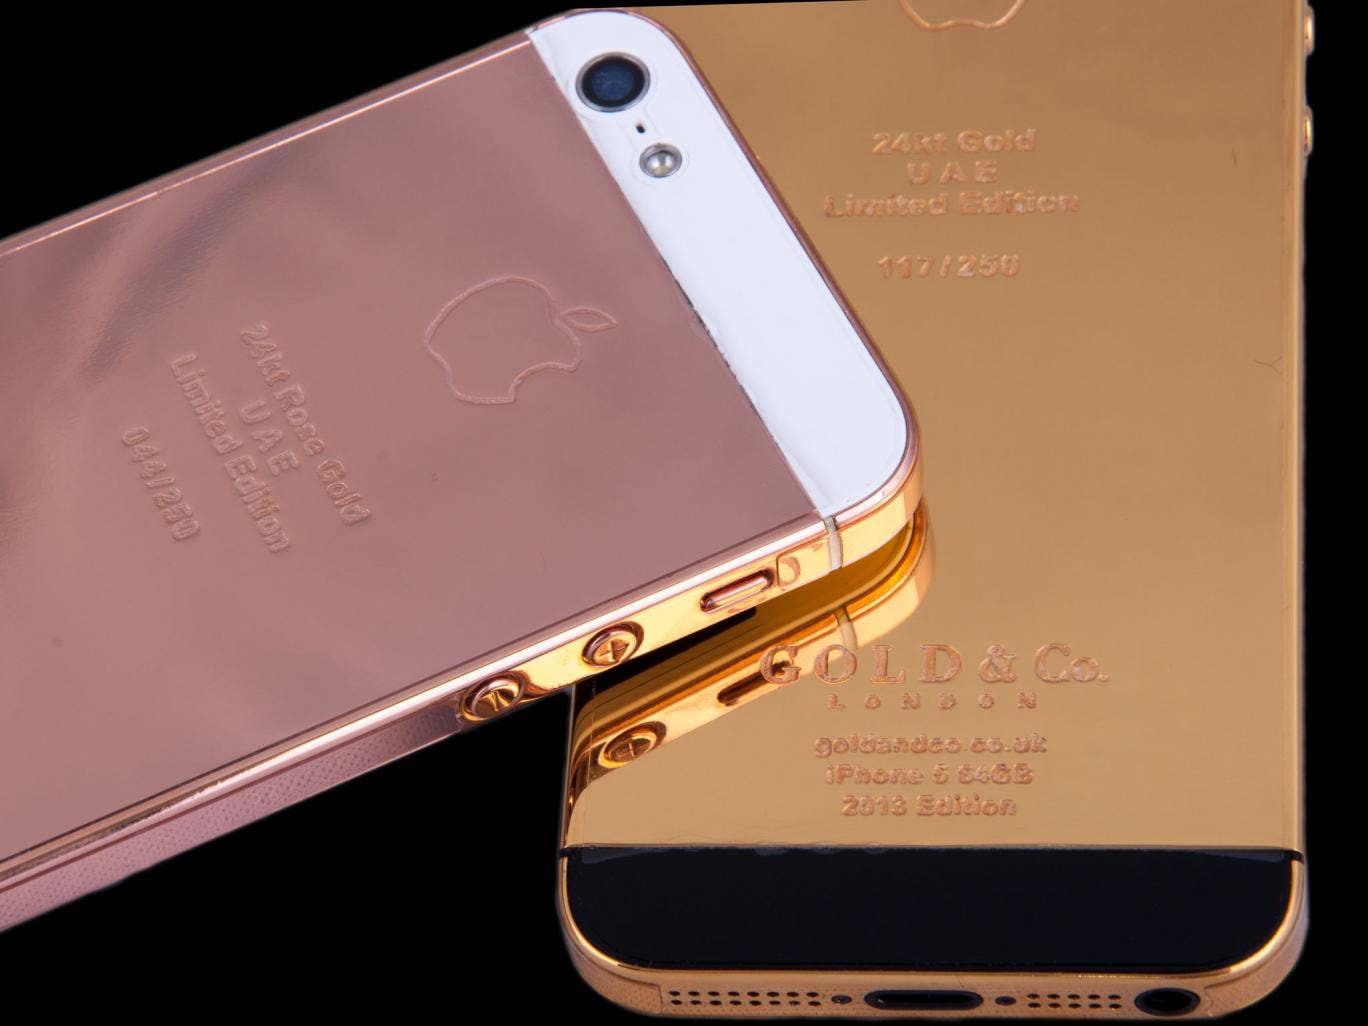 The £50,000 solid gold iPhone